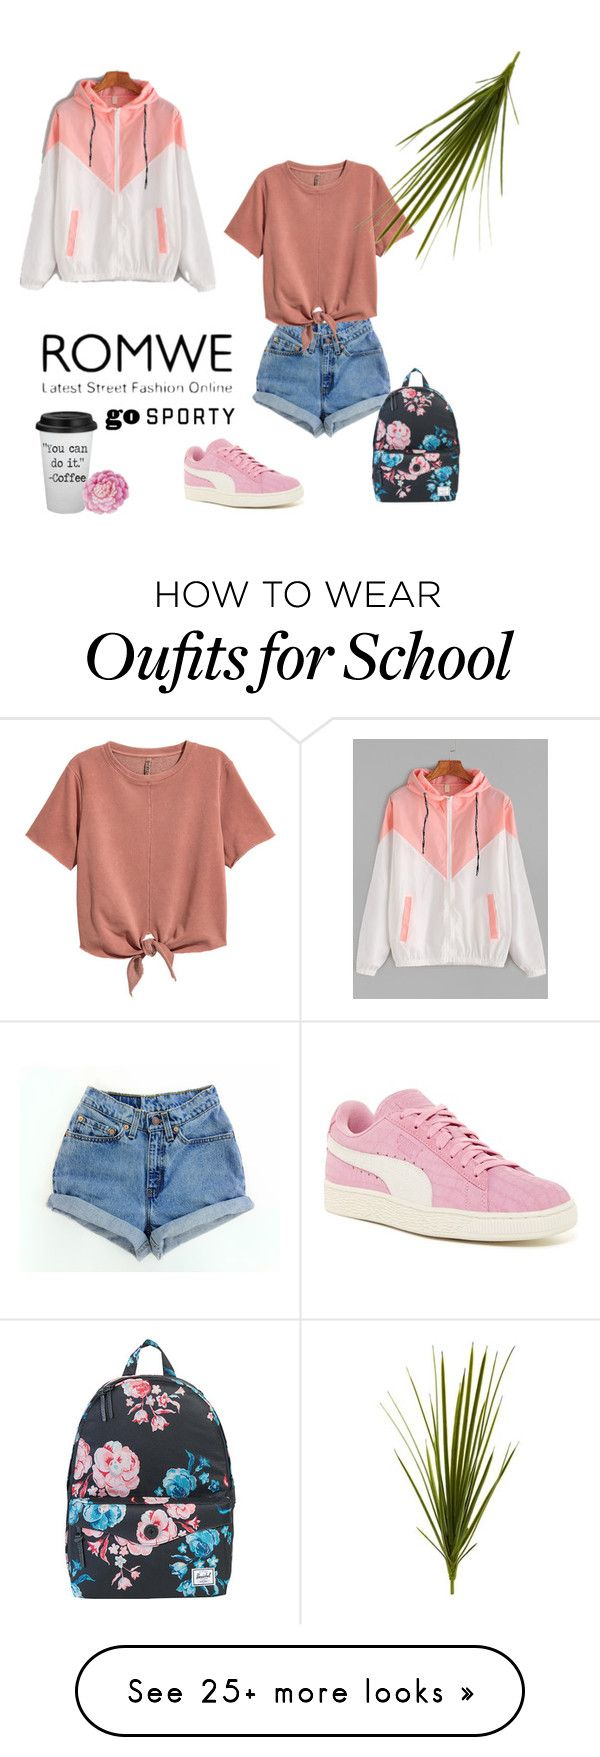 """"" by jeanne-creative on Polyvore featuring Levi's, H&M, Puma, Herschel Supply Co., Nearly Natural and Ballard Designs"